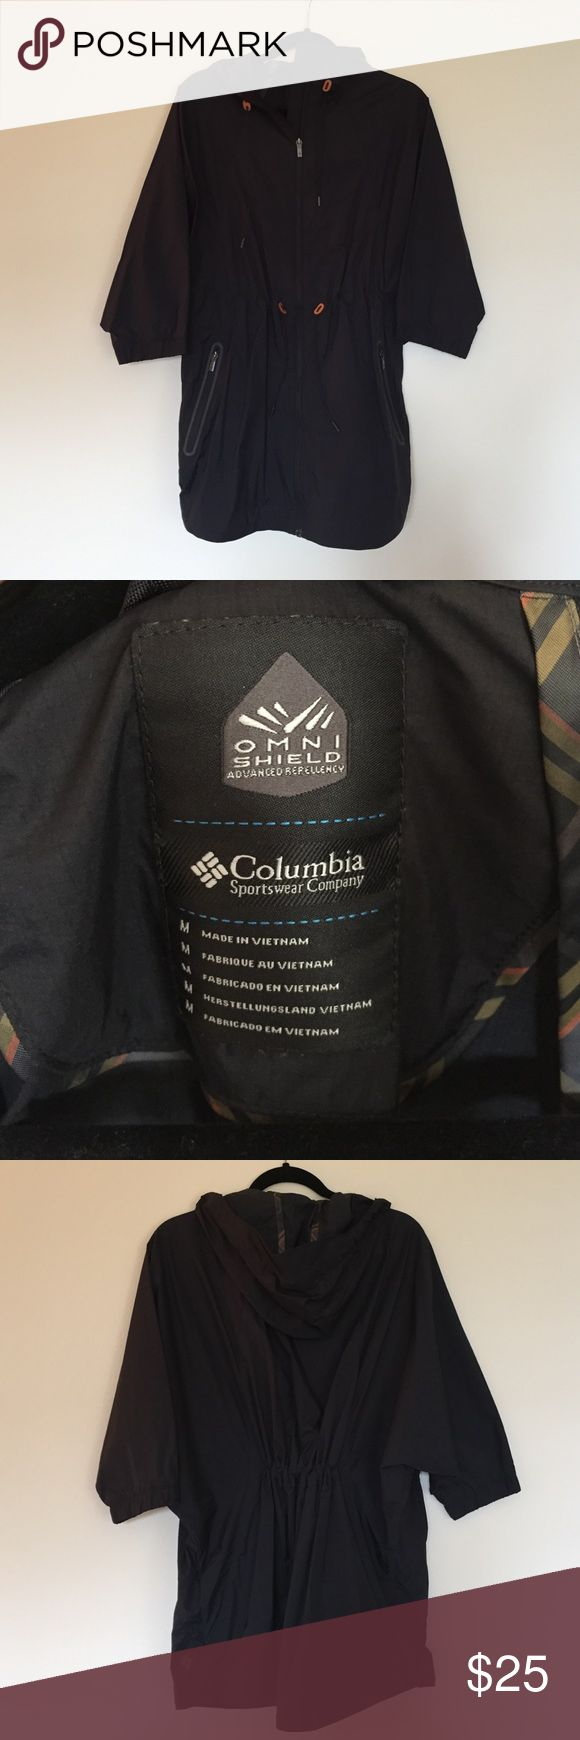 Columbia Rain Poncho Jacket Black Columbia rain poncho jacket with half sleeves. Great condition.  Excellent for warmer weather but you still need protection from the rain. Great for festivals! Columbia Jackets & Coats